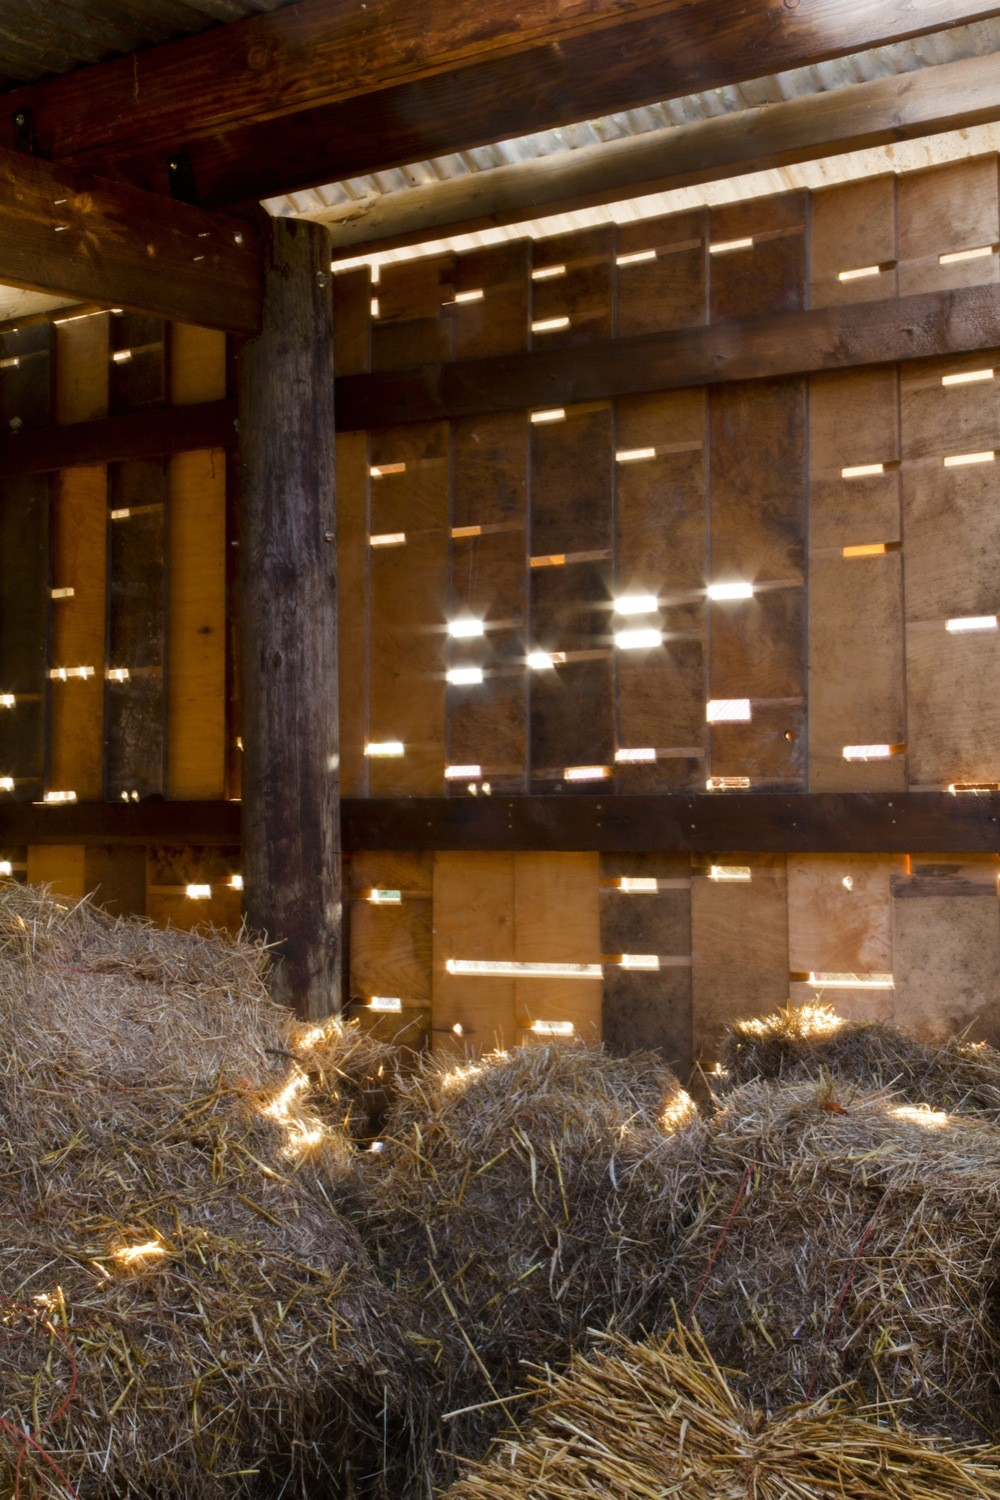 Cowshed__design_and_build_workshops_led_by_Cowshed_Collective._Image_by_Ste_Murray_(5).jpg